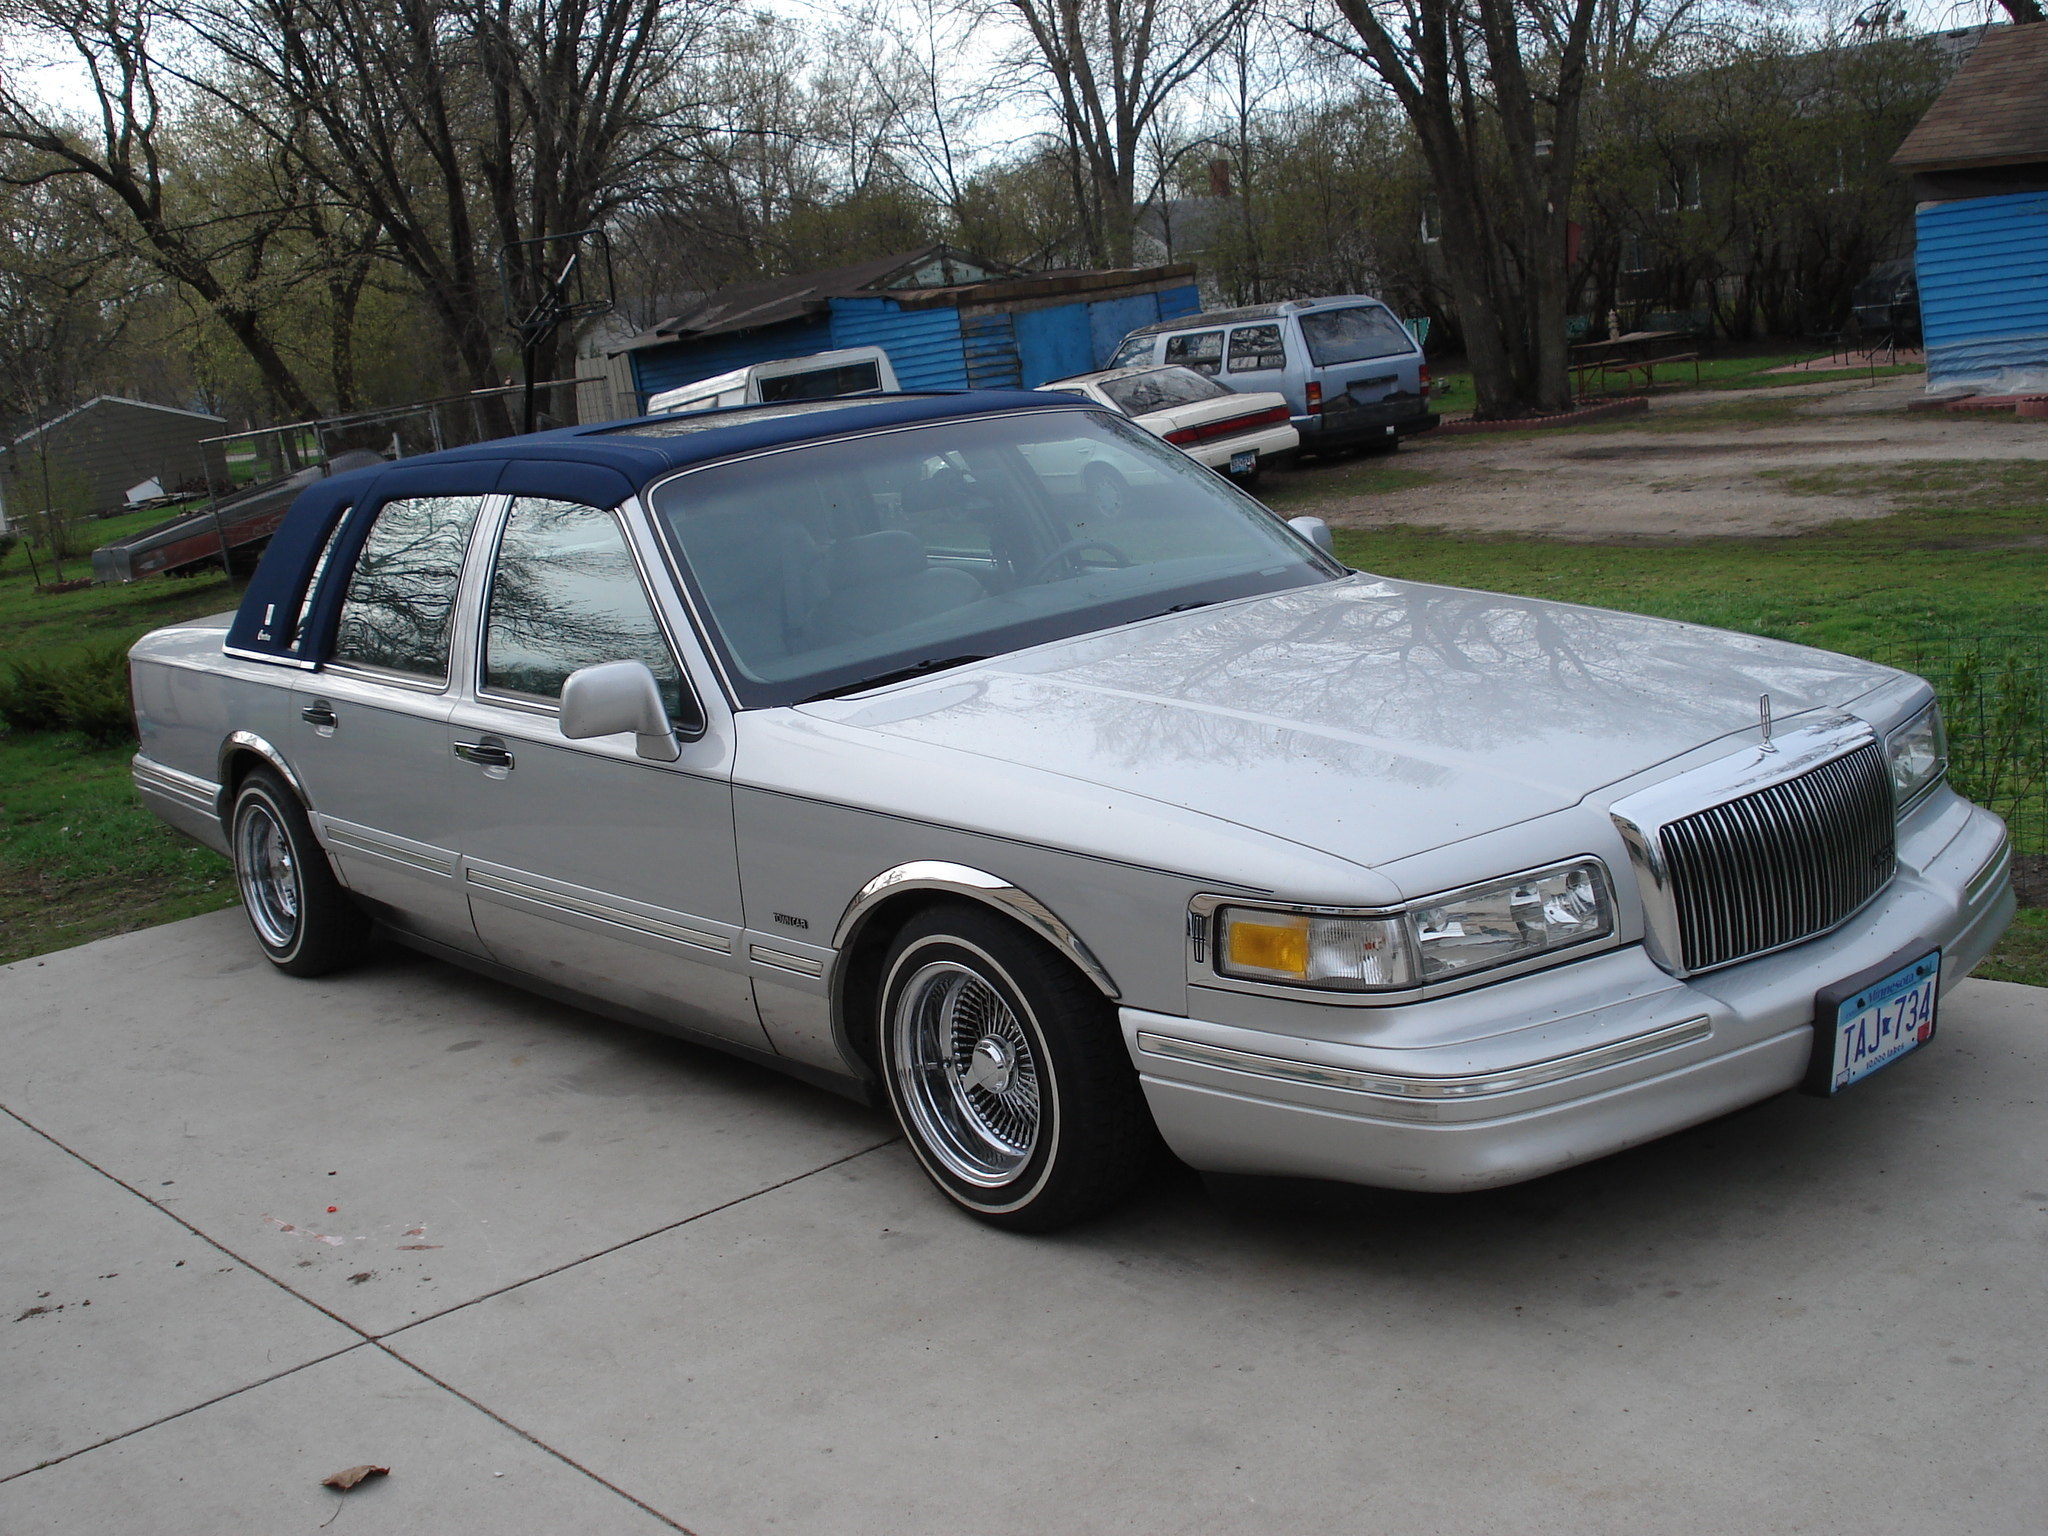 Carlit0 1997 Lincoln Town Car S Photo Gallery At Cardomain